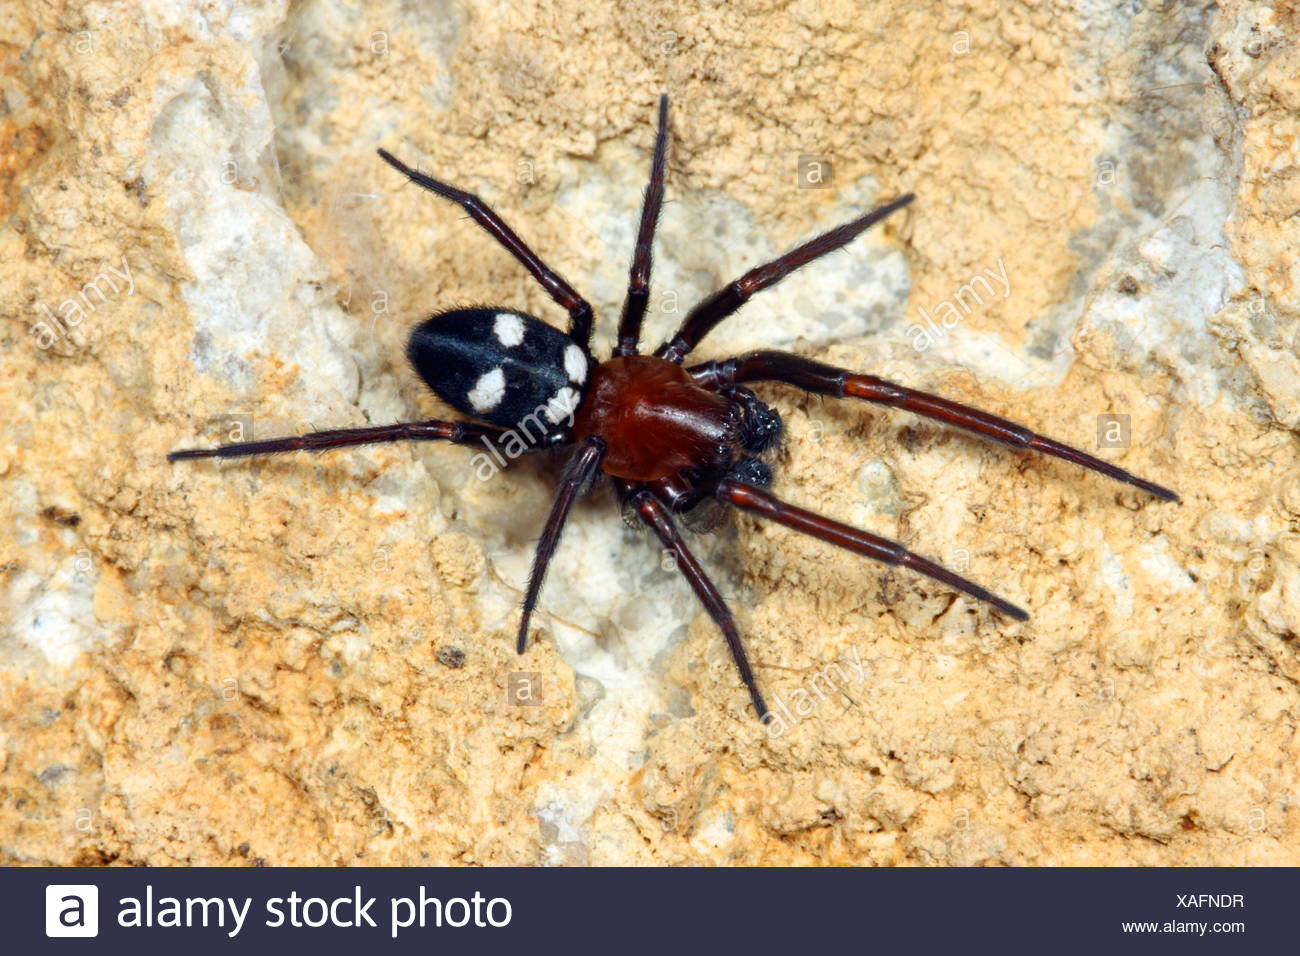 white-eyed spider, window lace-weaver (Titanoeca obscura), male sitting on a stone - Stock Image